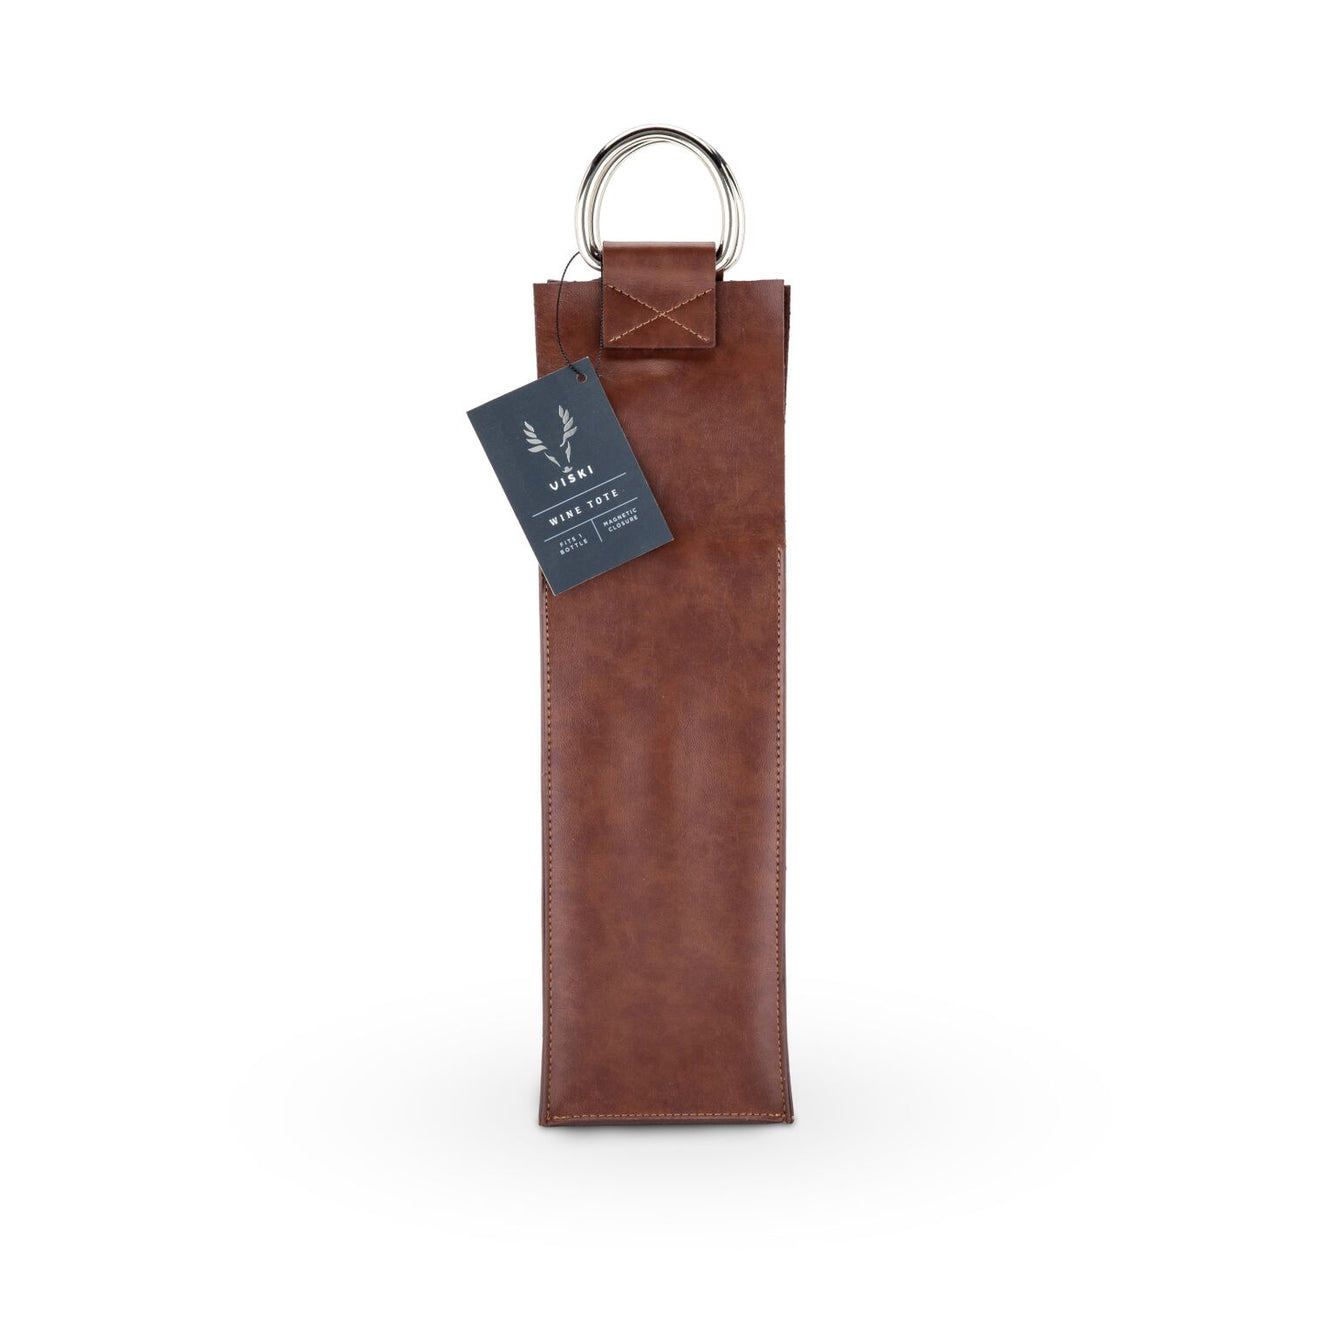 Admiral Faux Leather Brown Wine Tote-Home - Gifting - Bottle Bags - Holiday-VISKI-Peccadilly